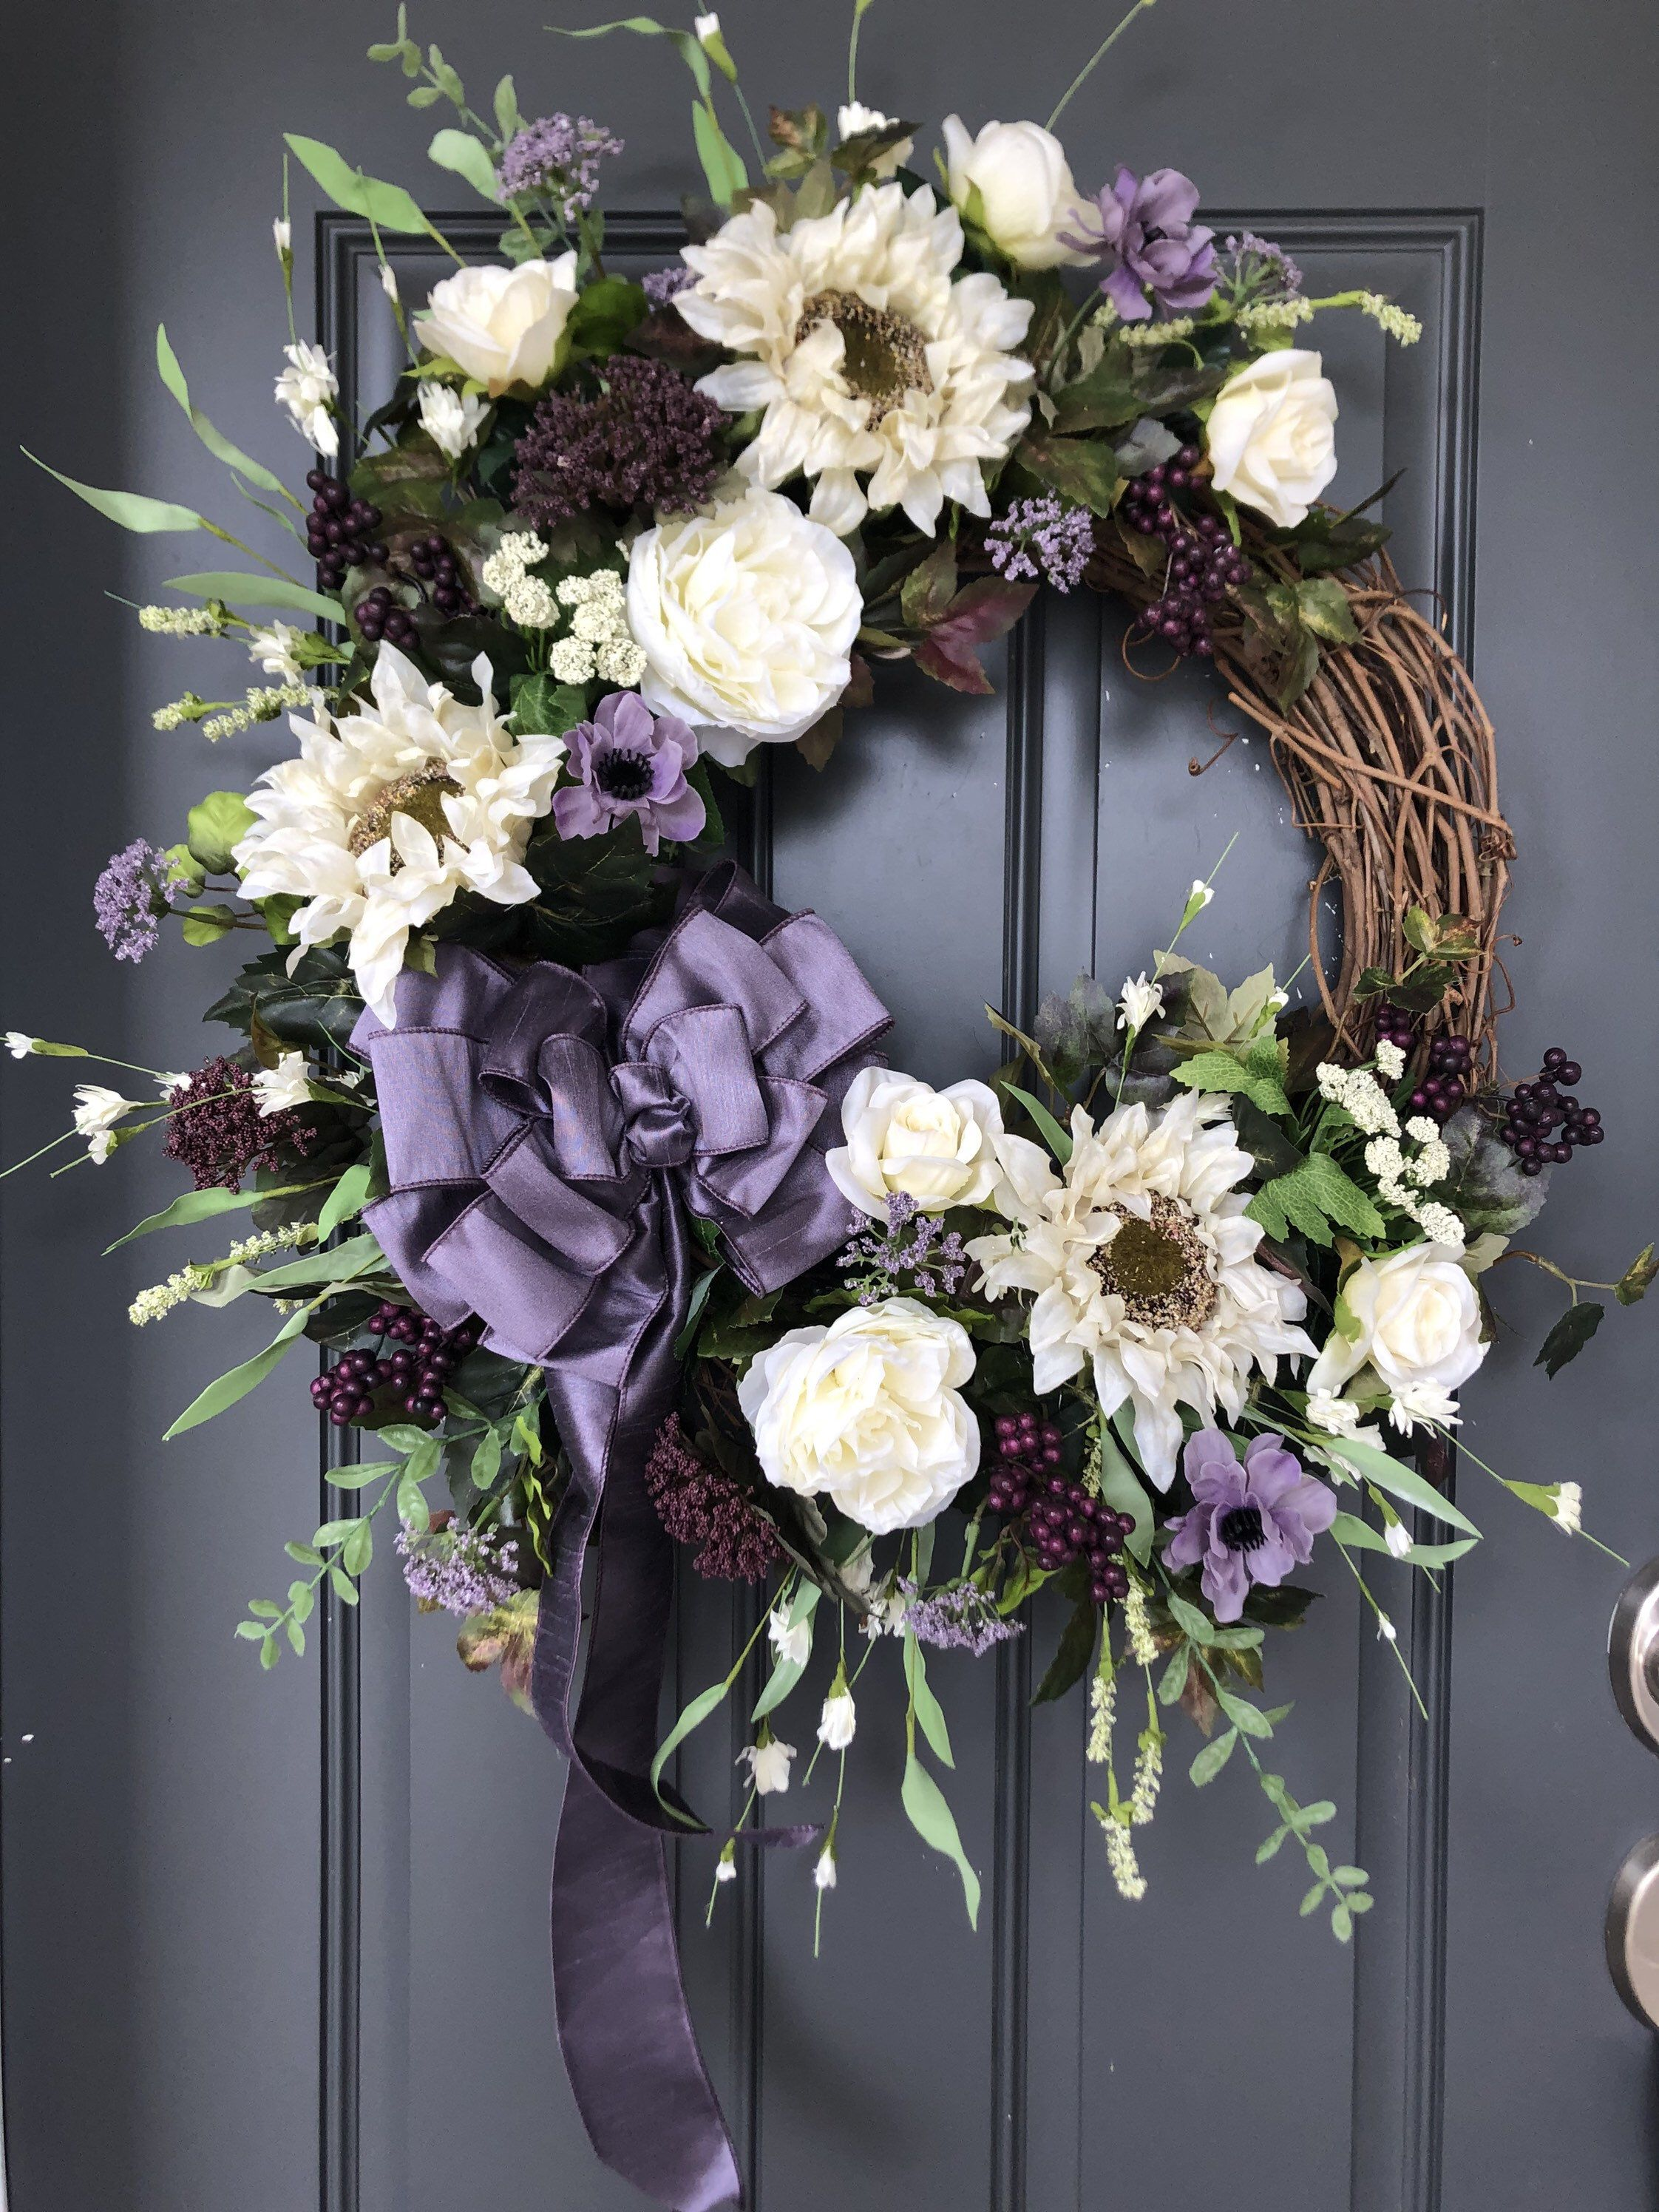 180 Wreaths And Swags Ideas Wreaths Spring Wreath Door Decorations